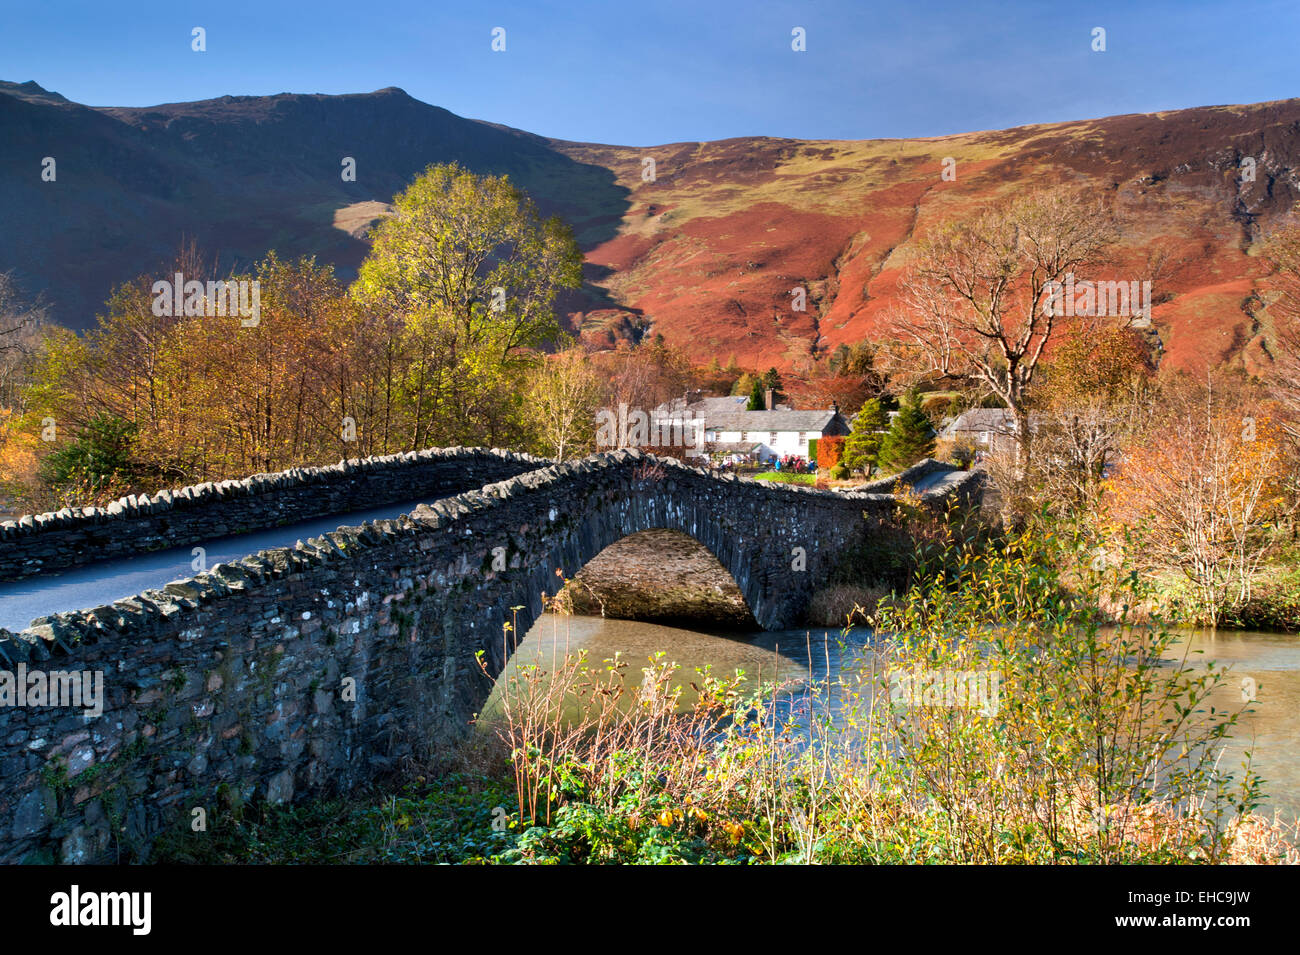 Grange in Borrowdale & River Derwent unterstützt durch The Derwent Fells im Herbst, Nationalpark Lake District, Stockbild